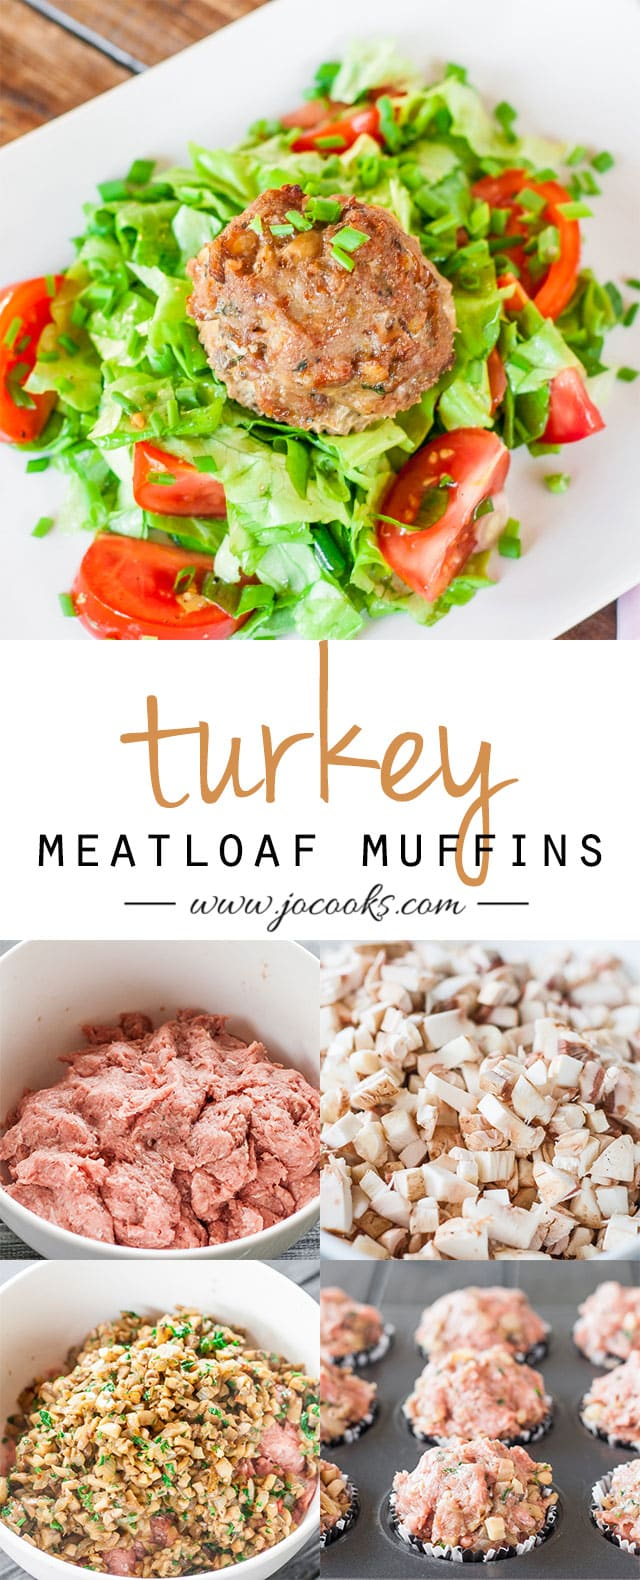 turkey-meatloaf-muffins-collage